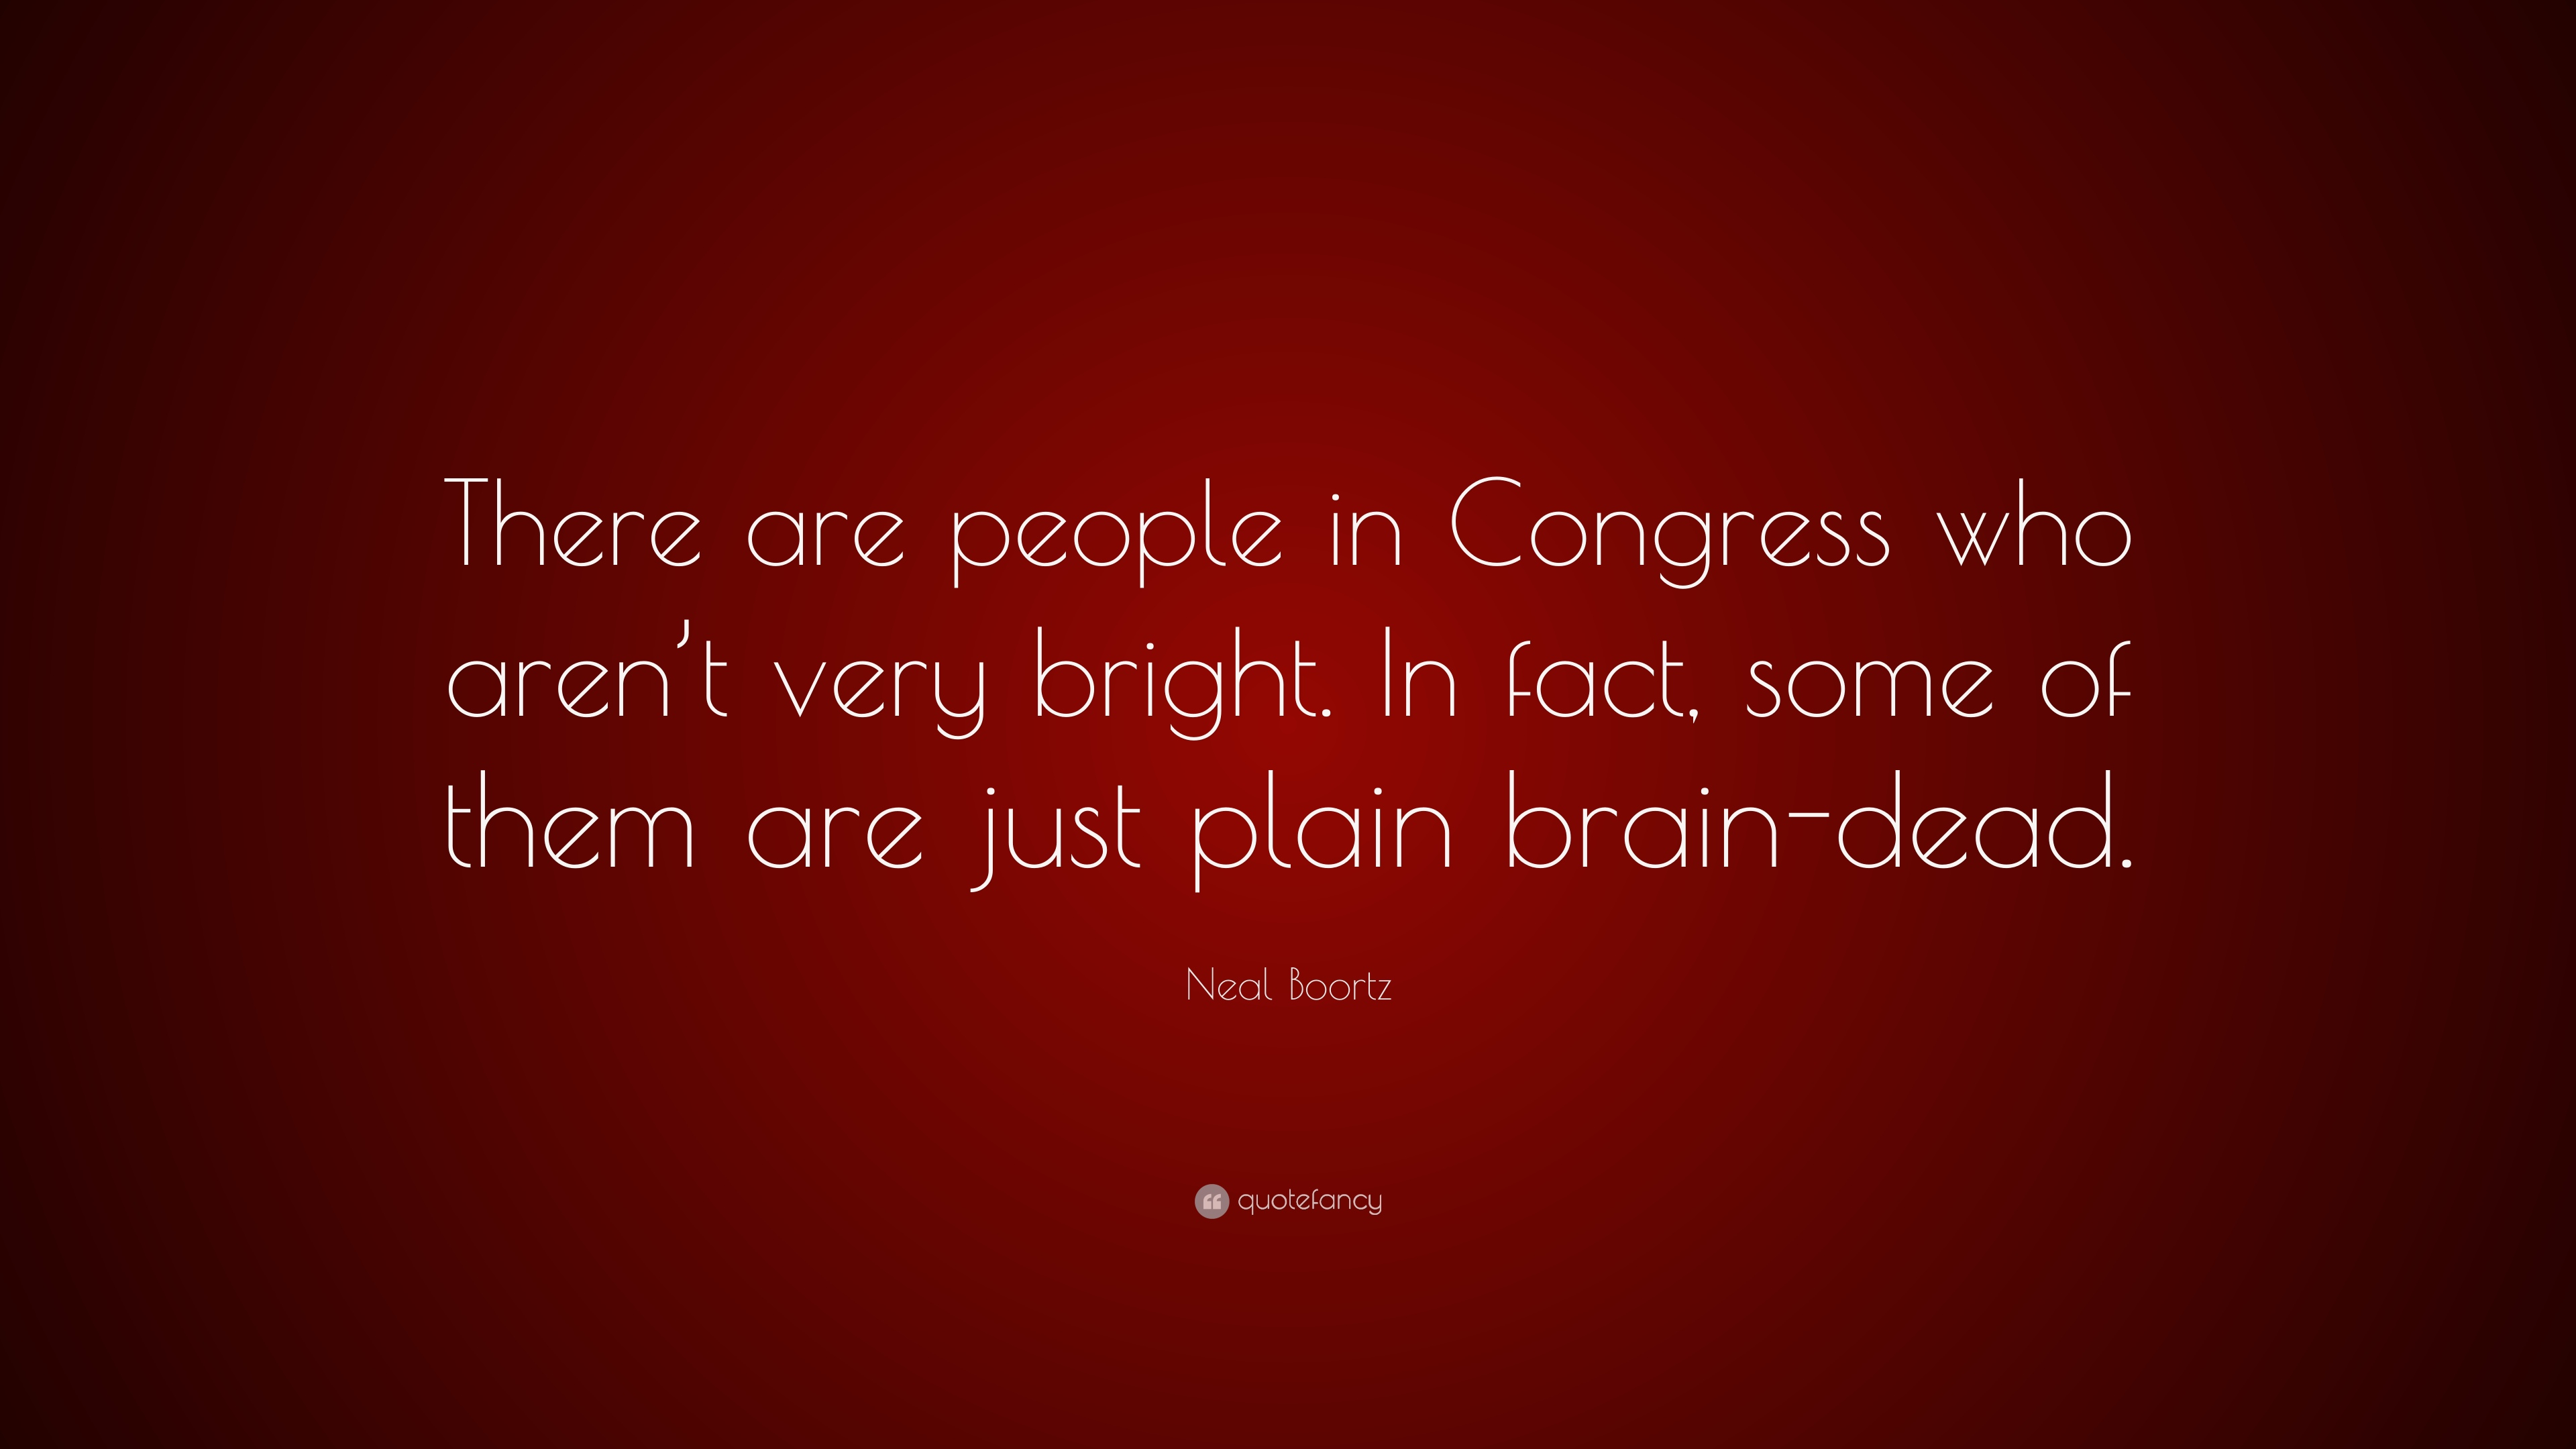 9 Wallpapers Neal Boortz Quote There Are People In Congress Who Arent Very Bright